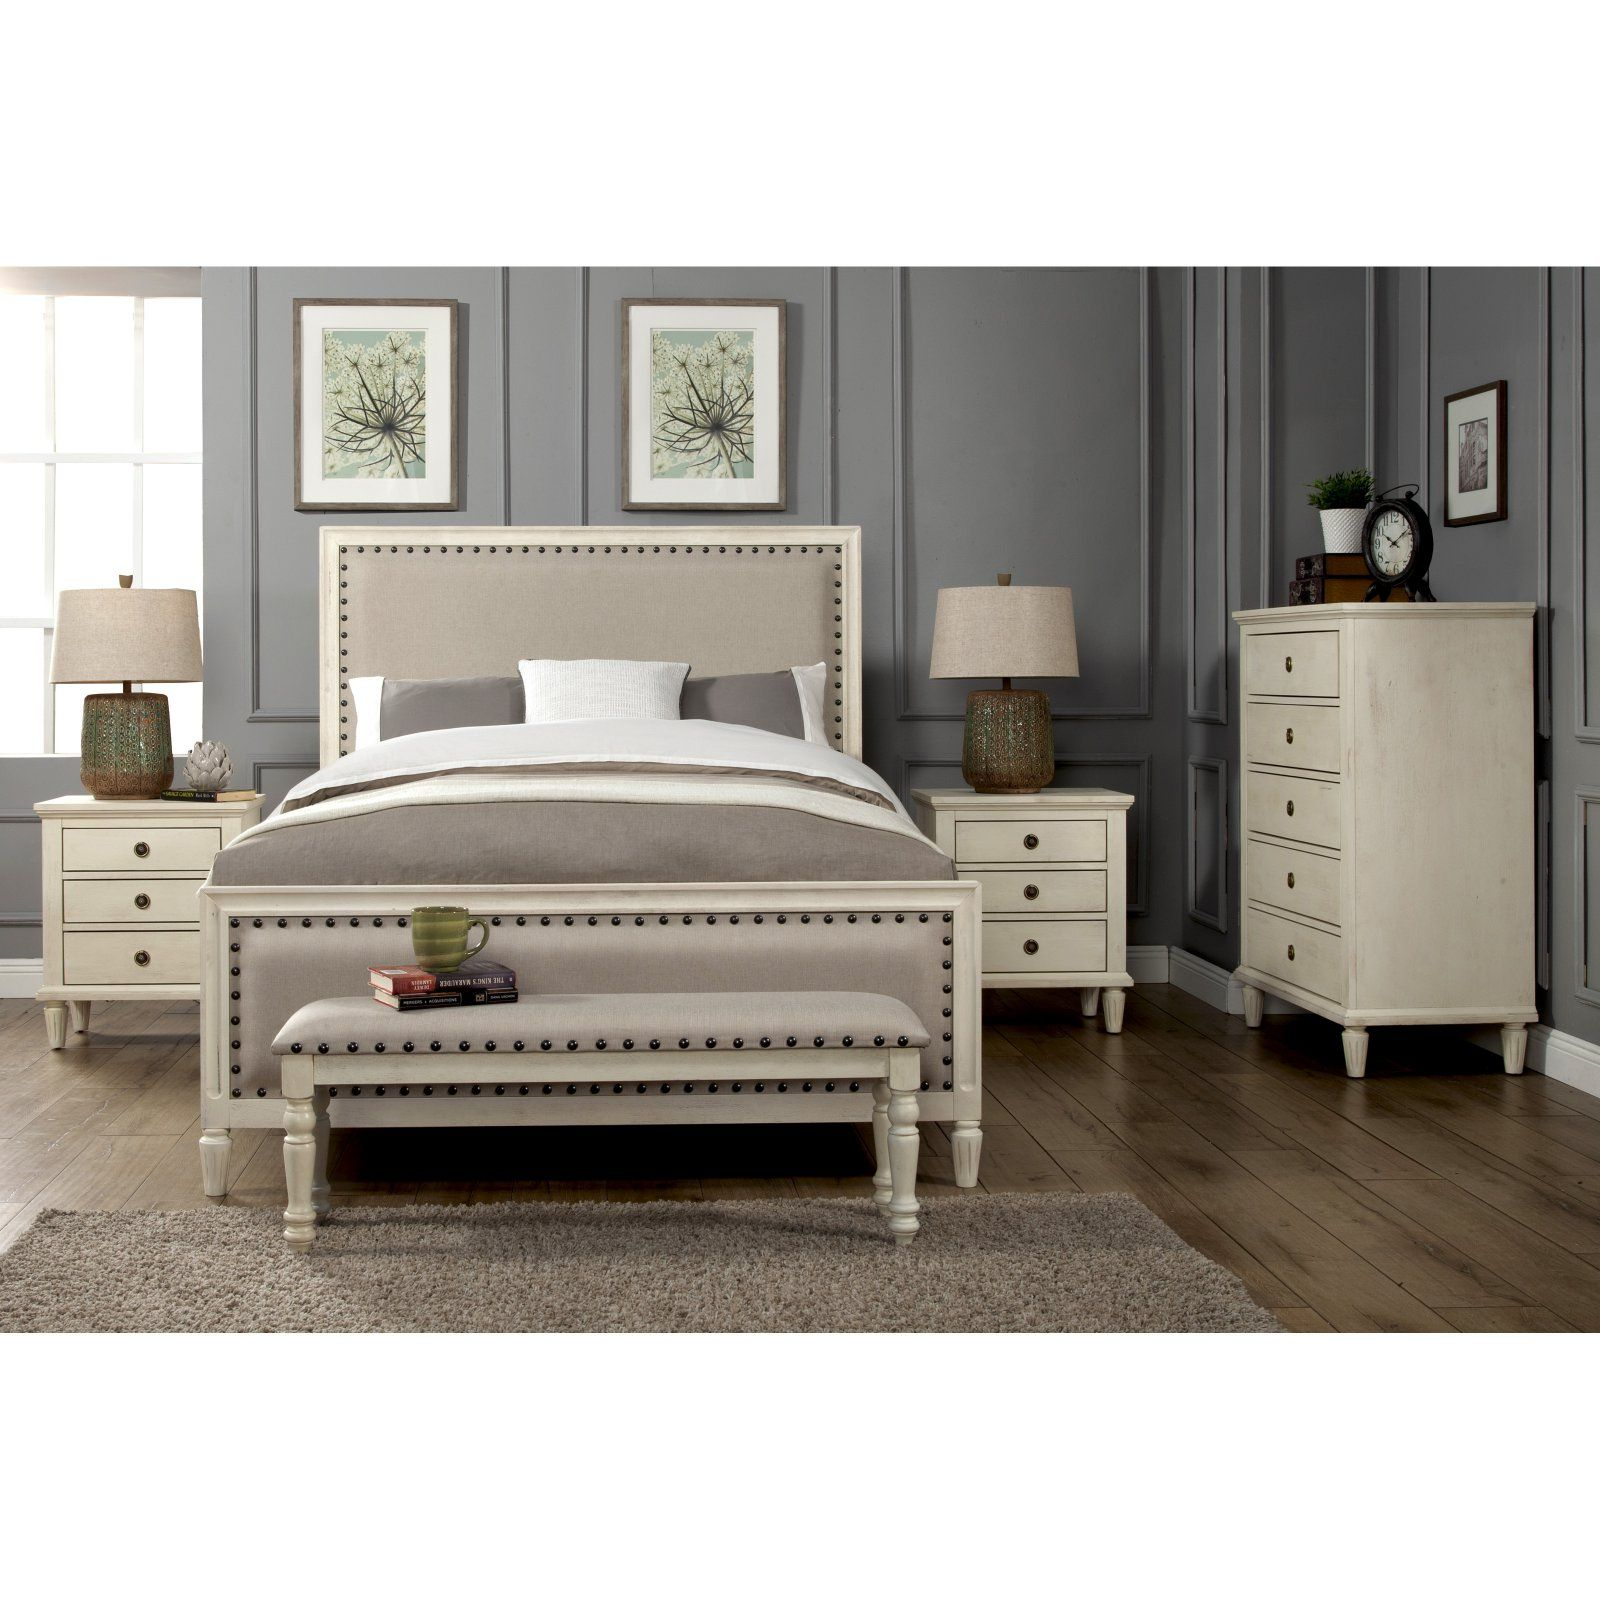 LuXeo Cambridge Upholstered Low Profile Bed White, Size ...